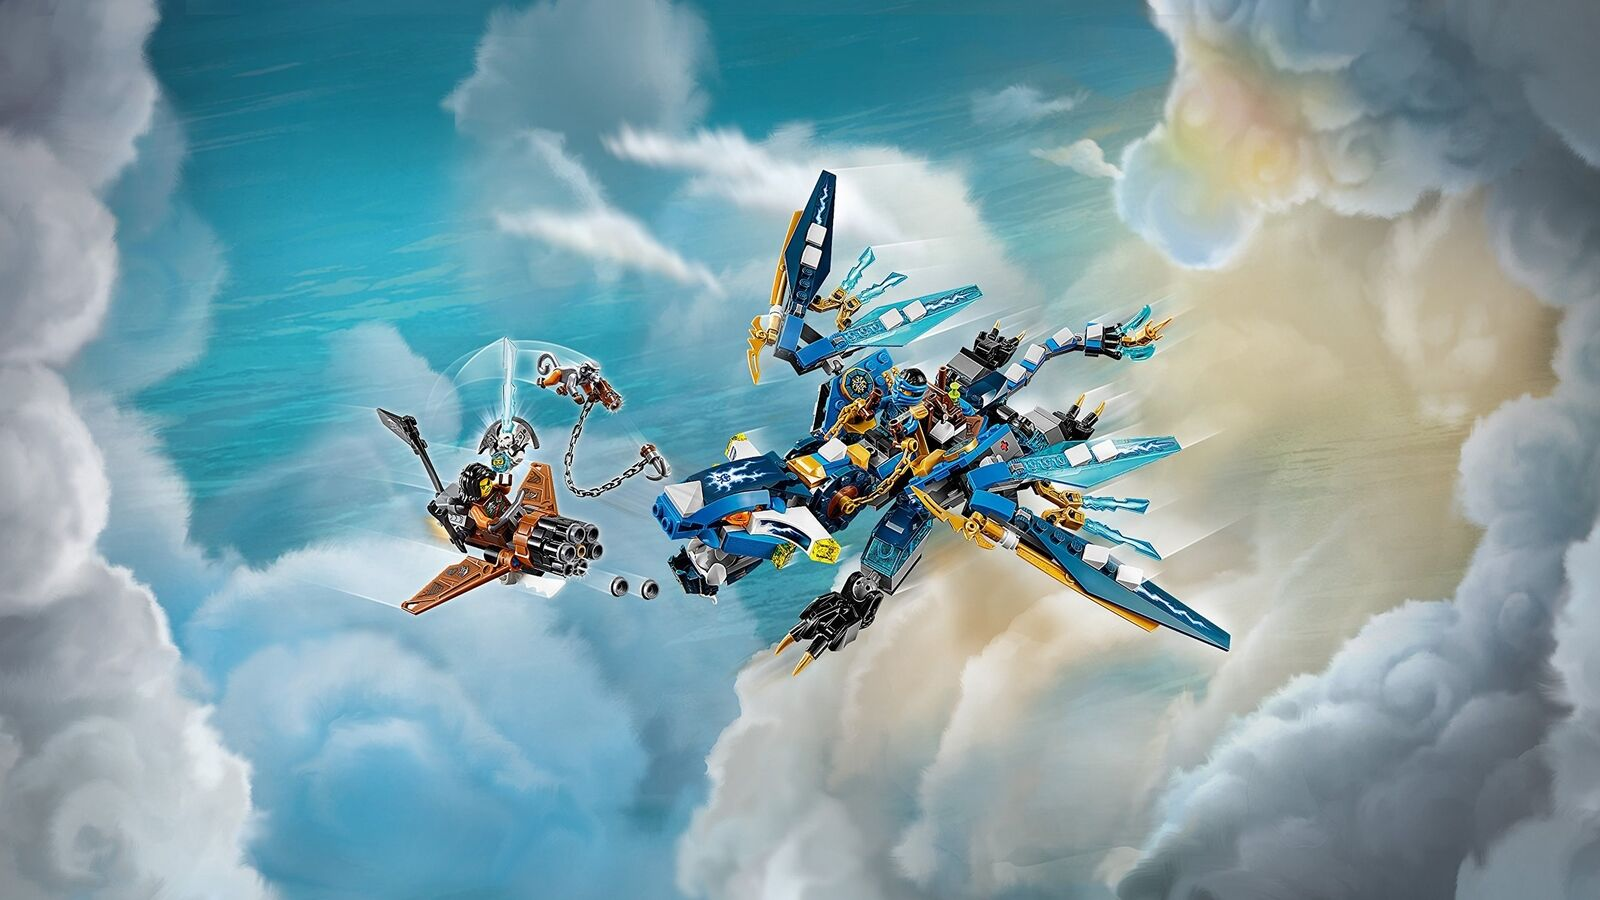 LEGO 70602 Jay's Jay's Jay's Elemental Dragon Action Figure a1f6bd